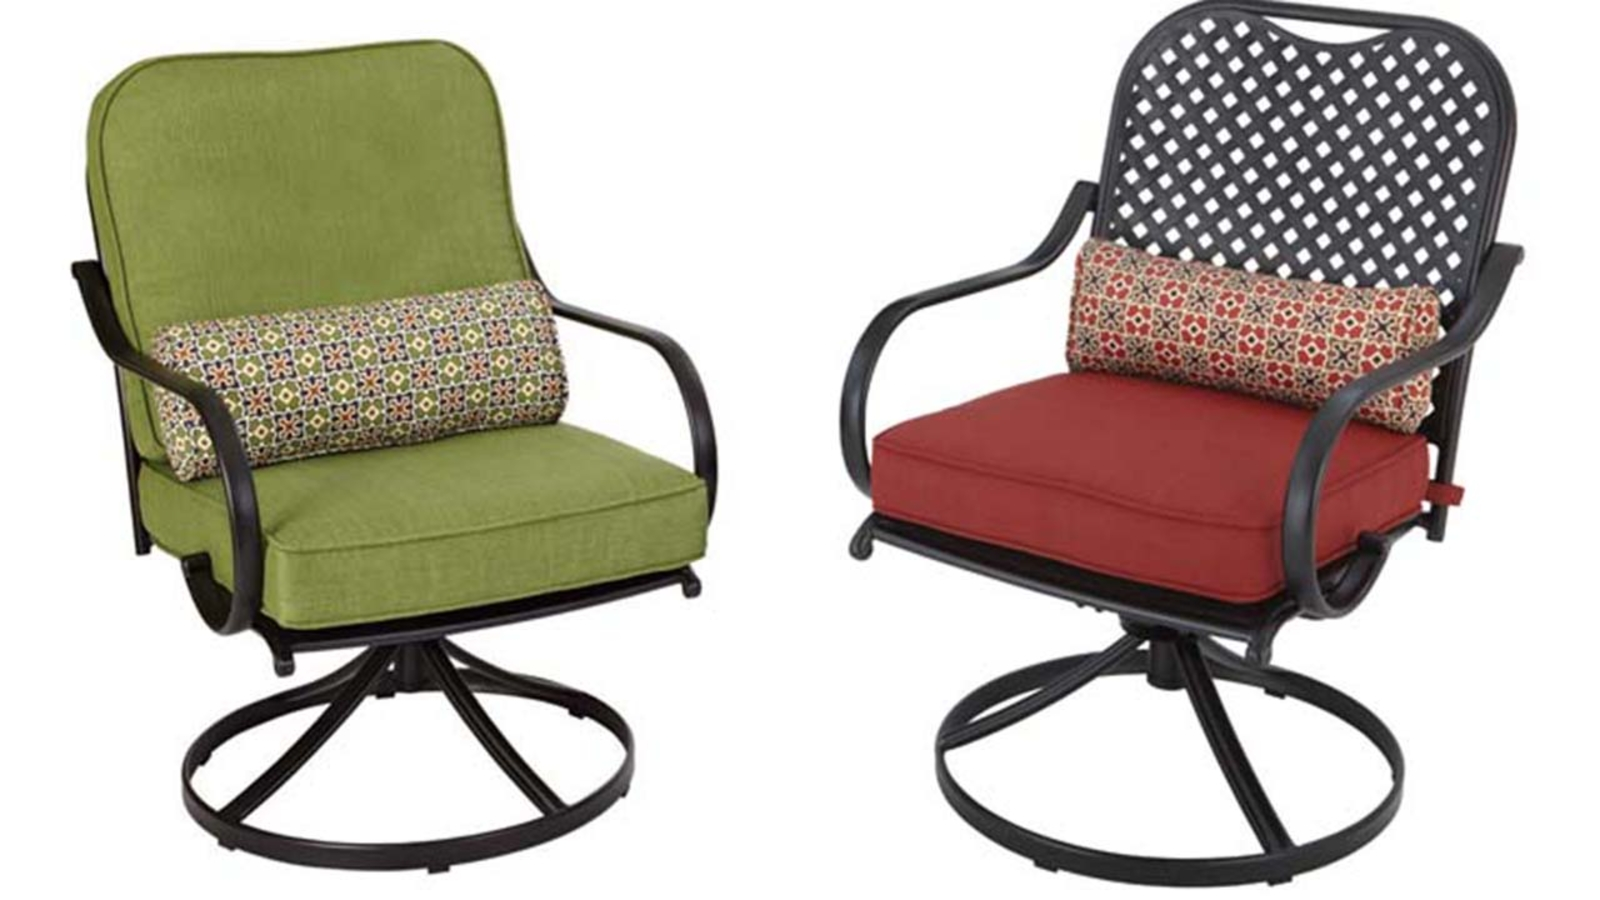 Home Depot patio chairs recalled for fall hazard - ABC13 ...